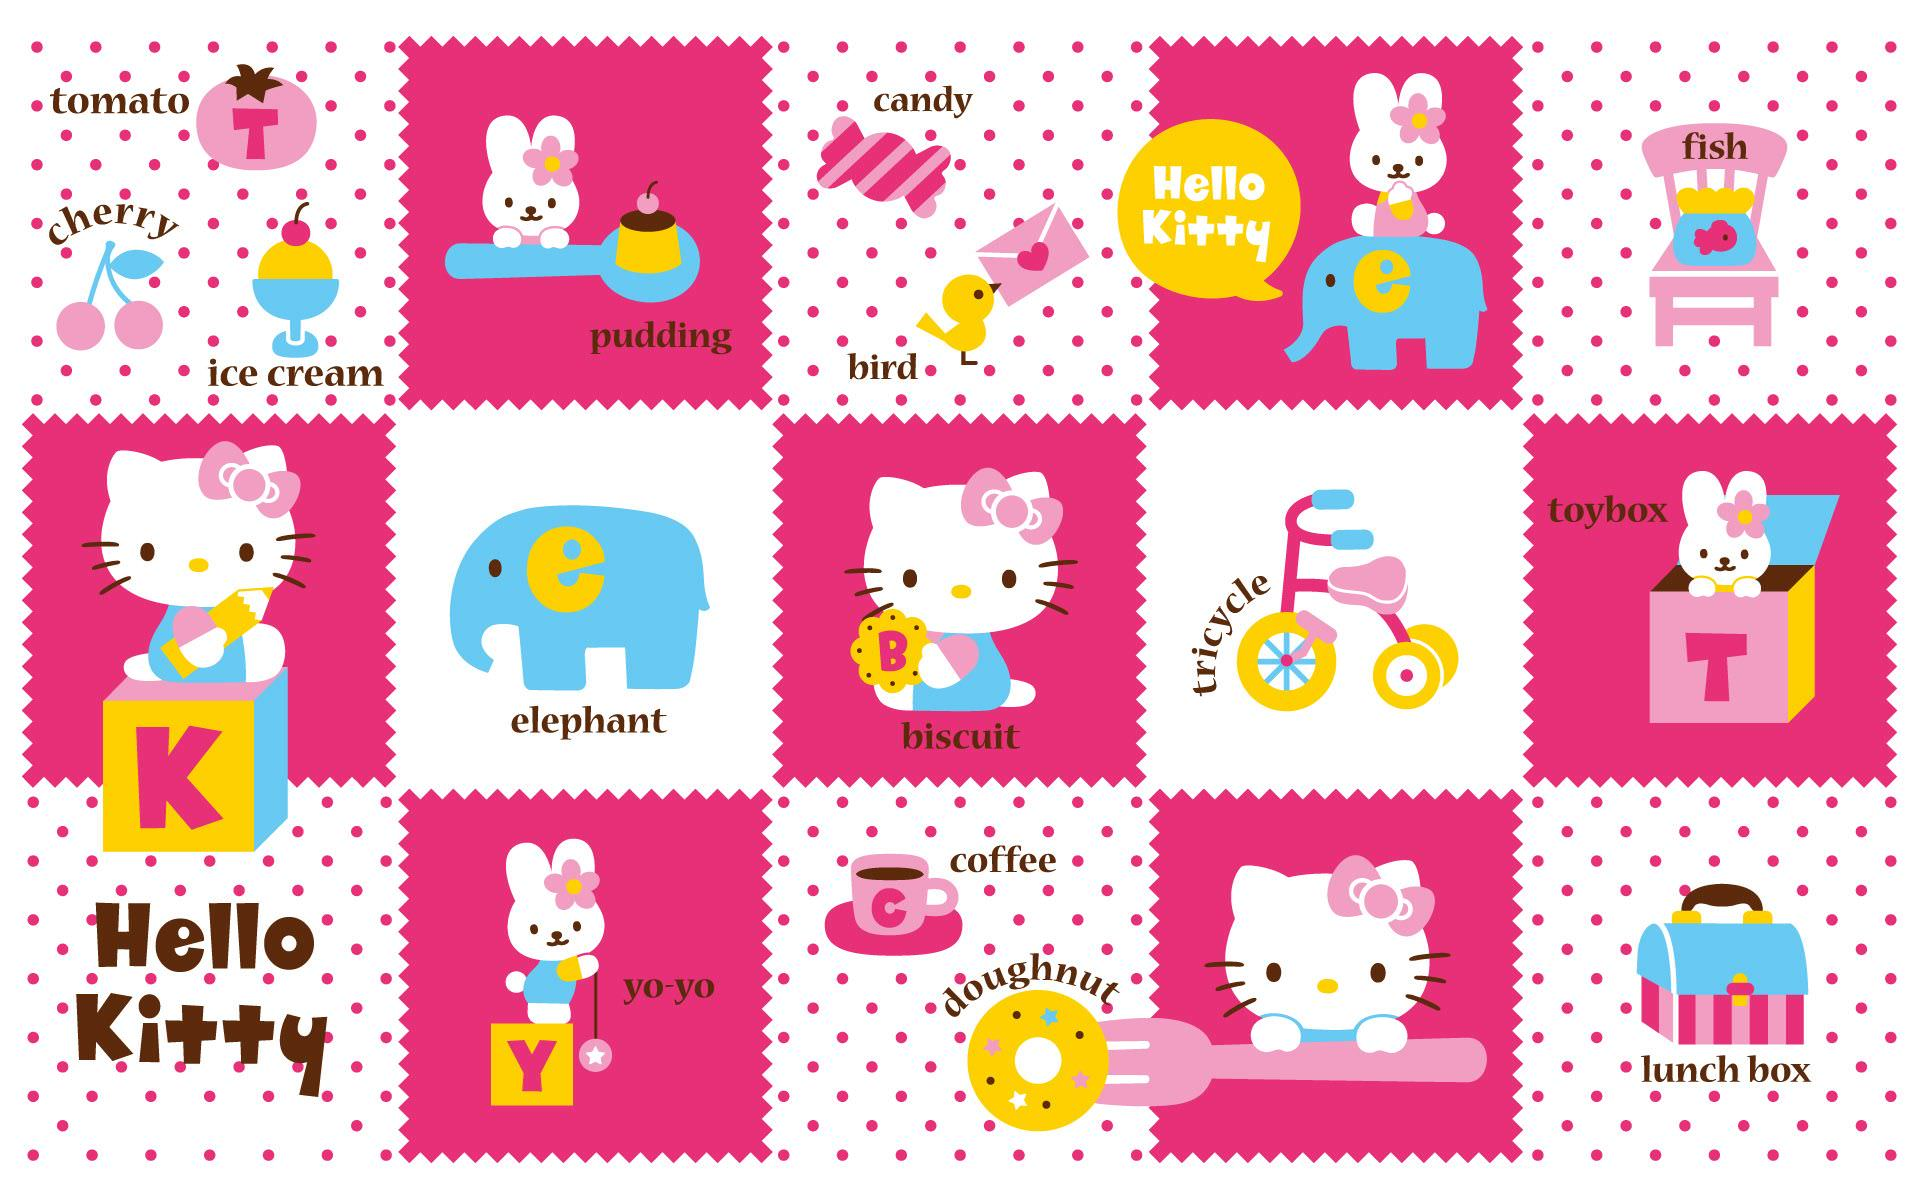 Hello Kitty Küchenmaschine 30+ Hello Kitty Backgrounds, Wallpapers, Images | Design ...